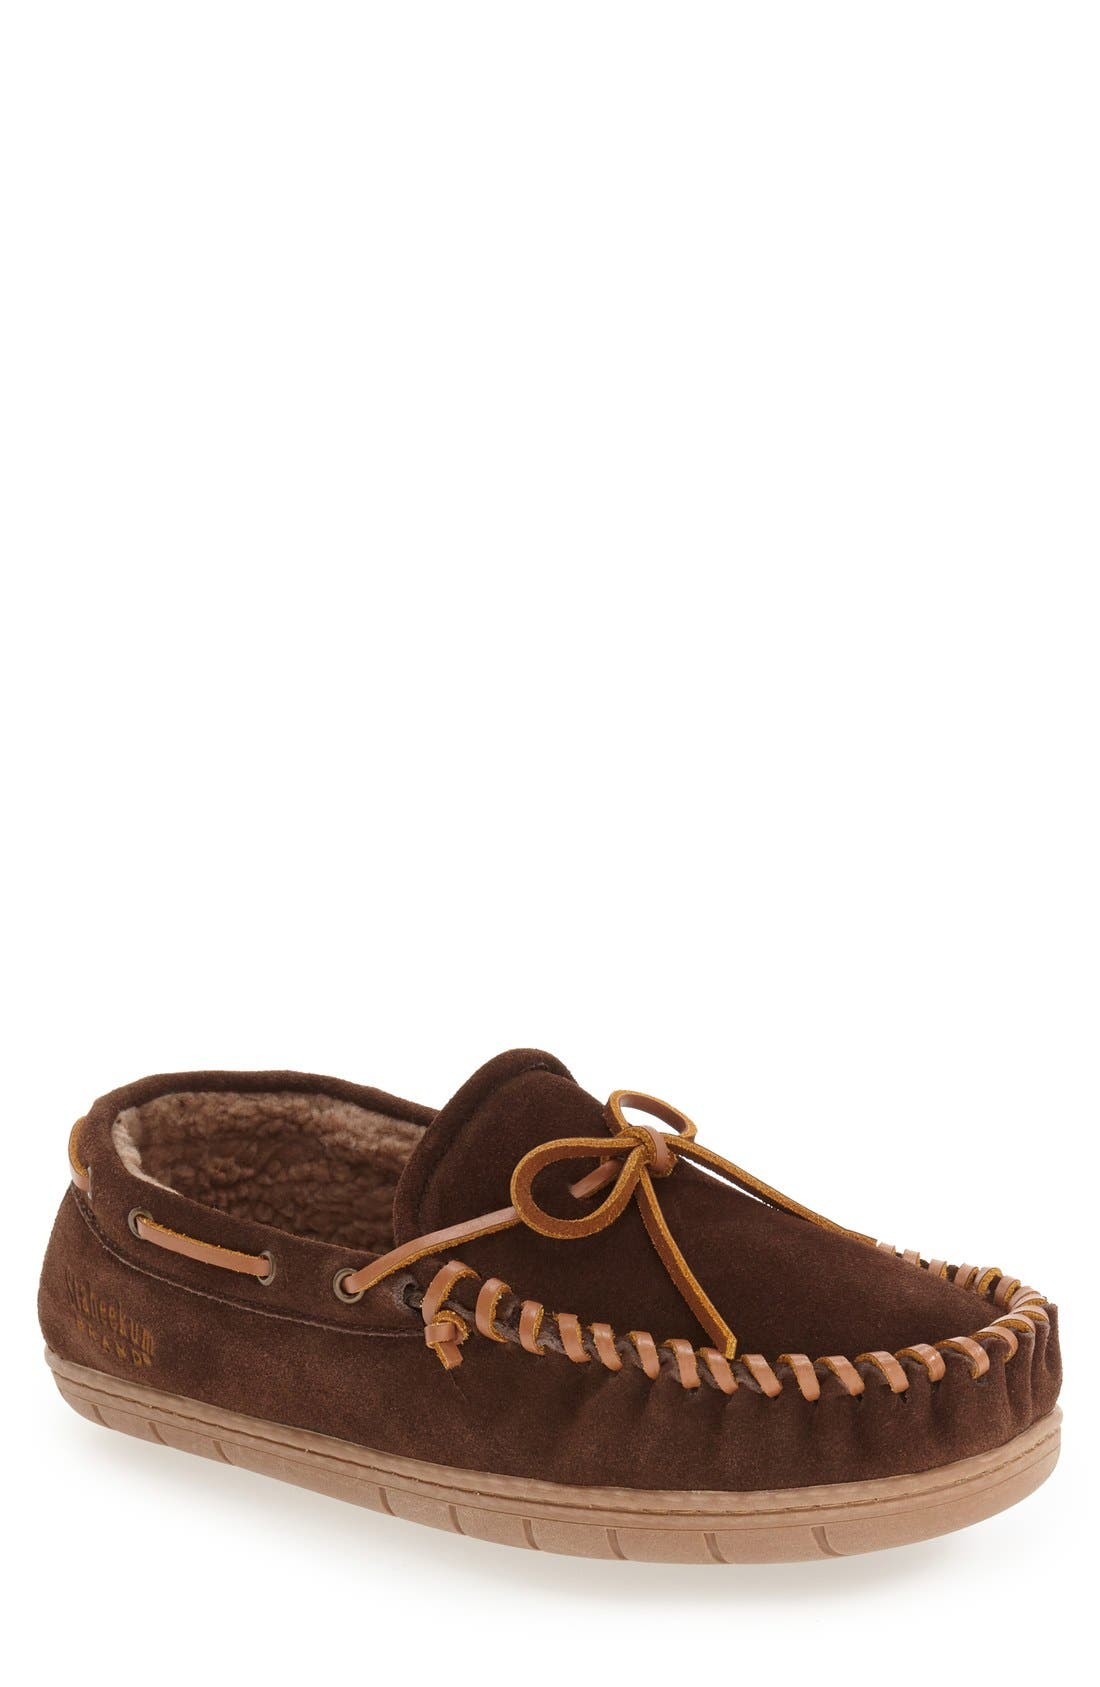 'Courier' Moccasin Slipper,                             Main thumbnail 1, color,                             203